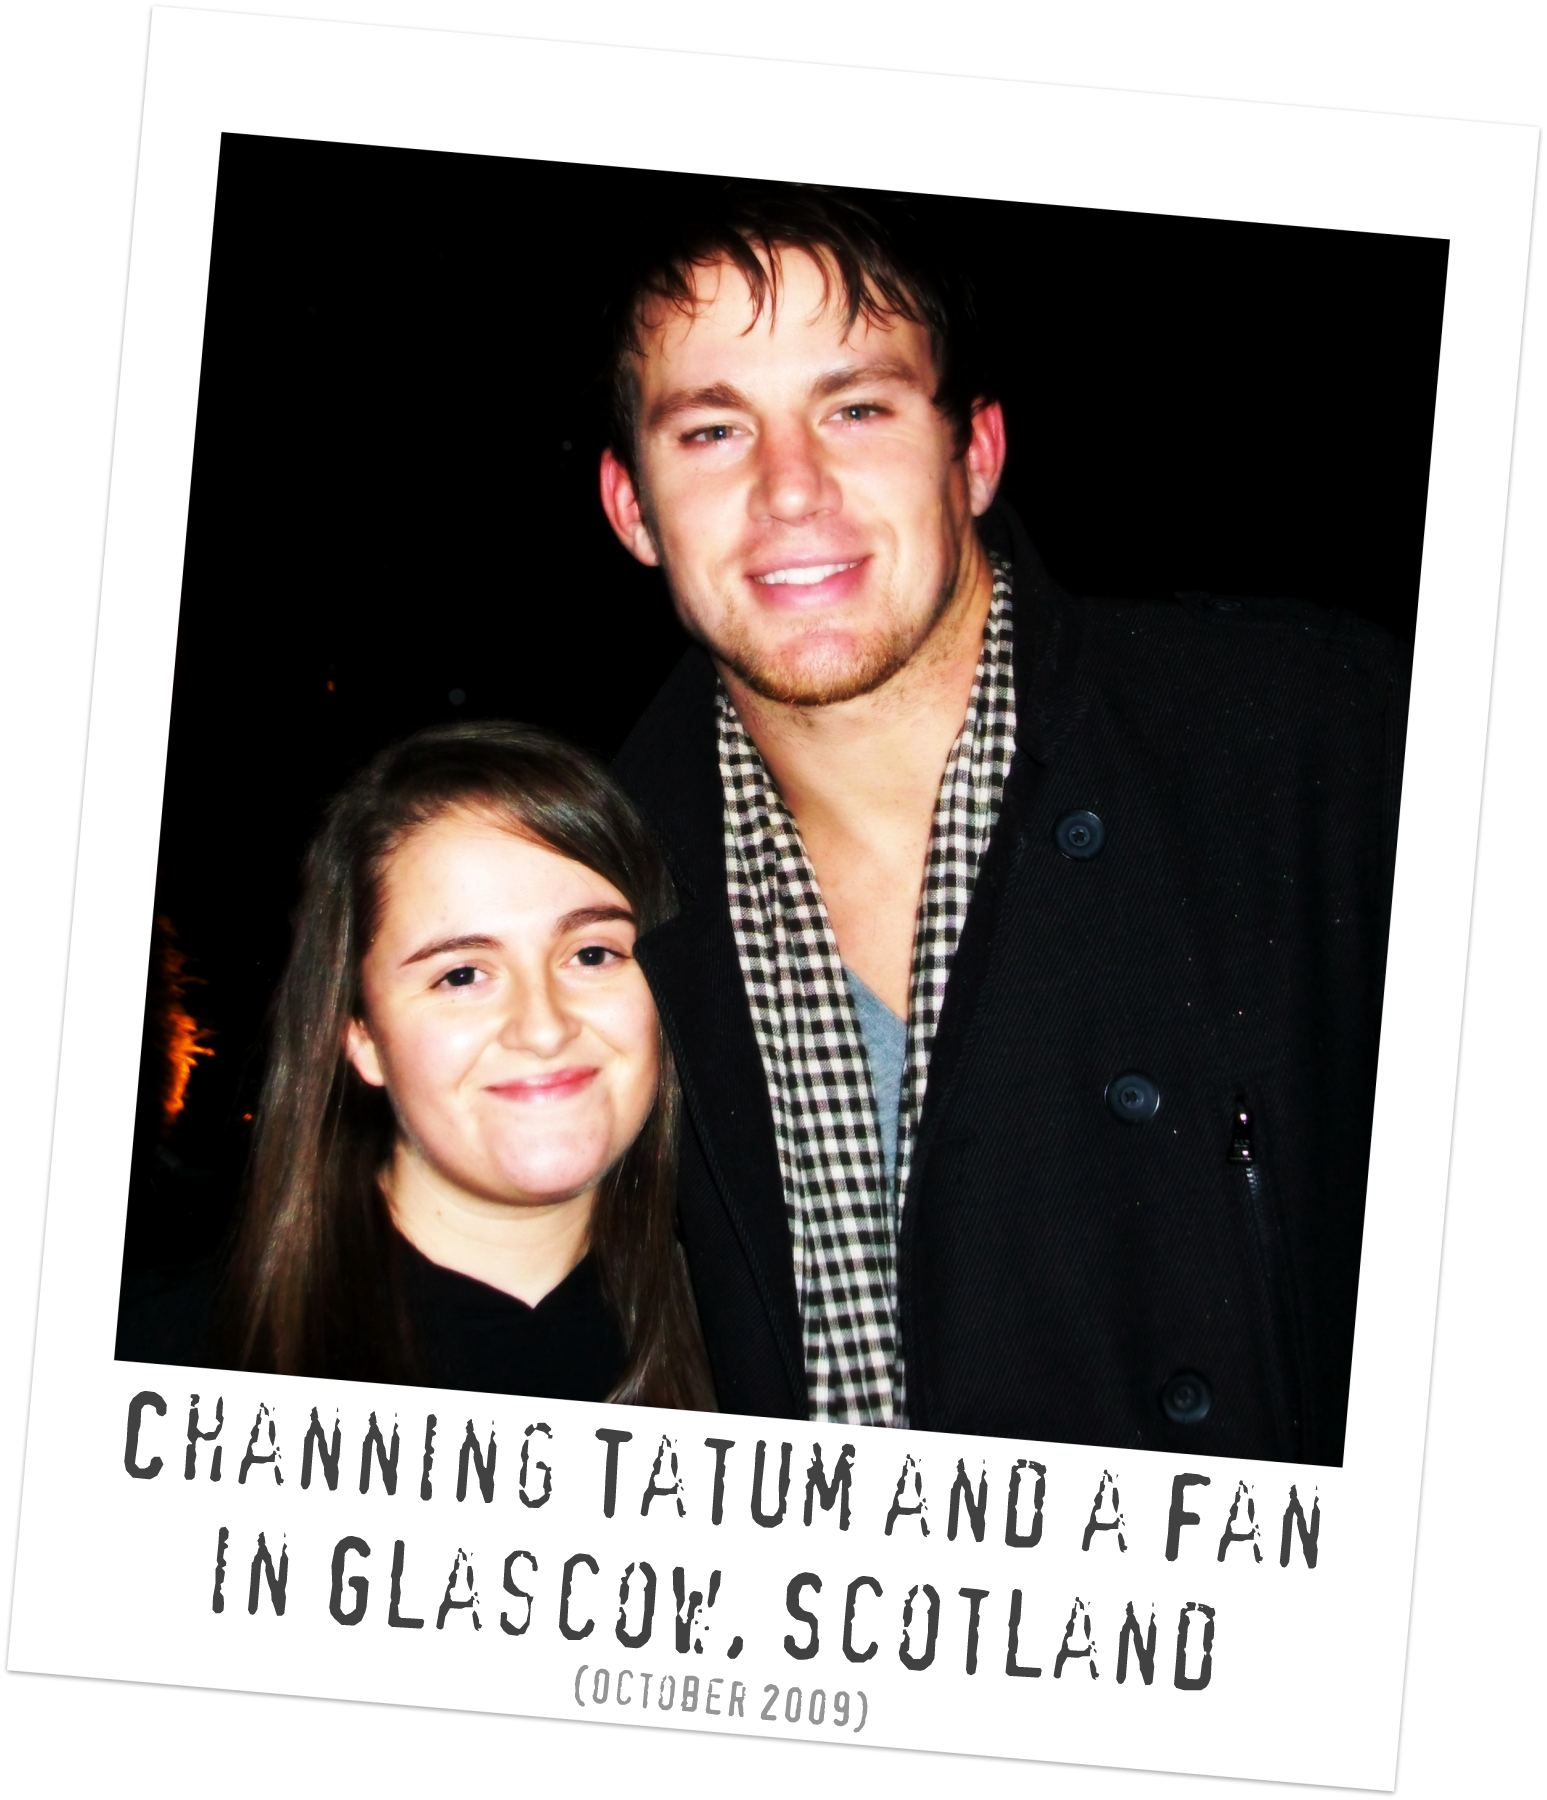 Channing Tatum with Fans in Scotland